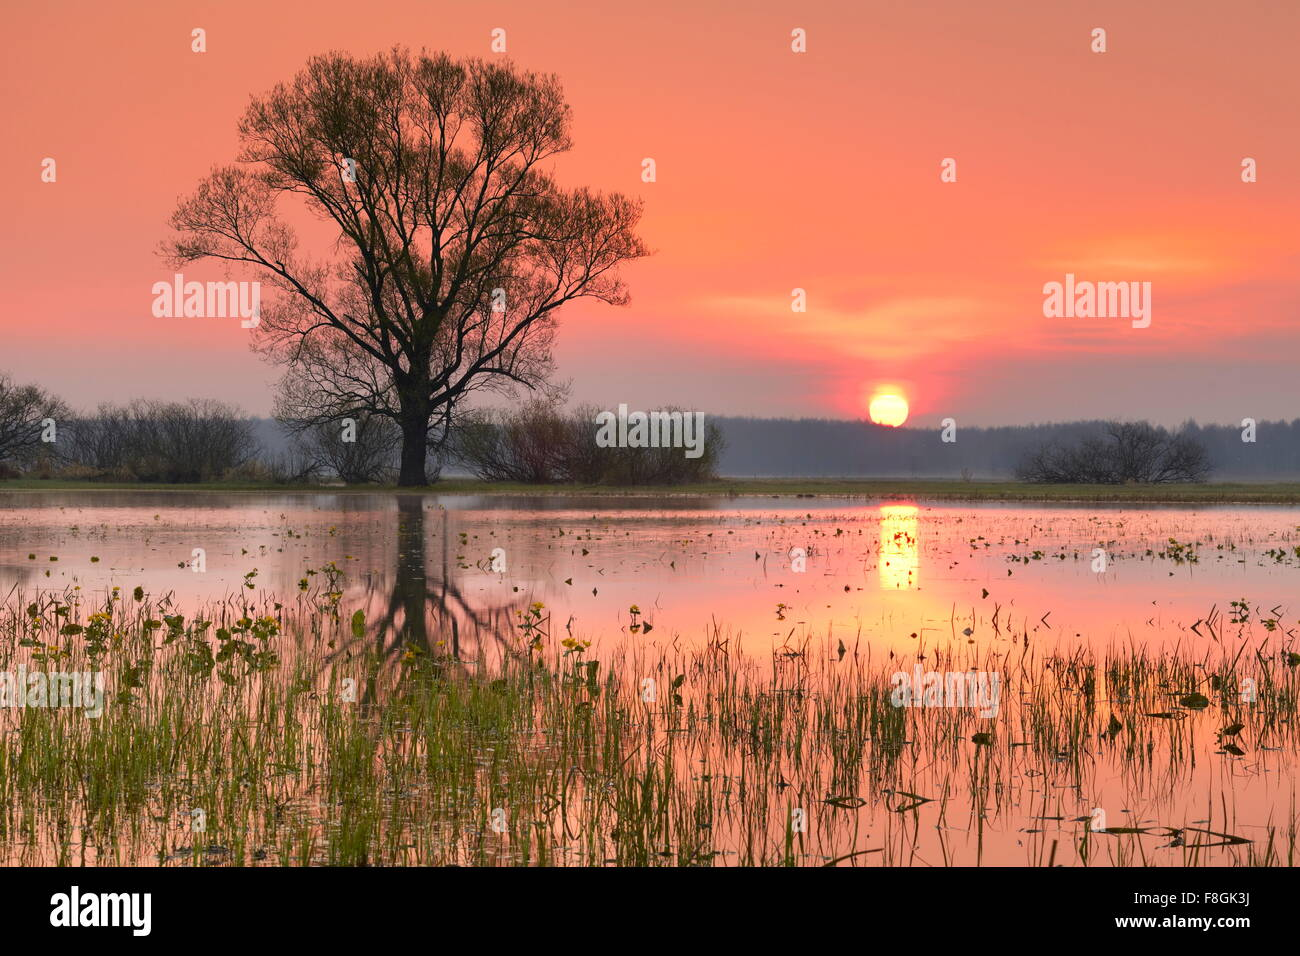 Lever du soleil paysage, parc national de Biebrza, Pologne Photo Stock